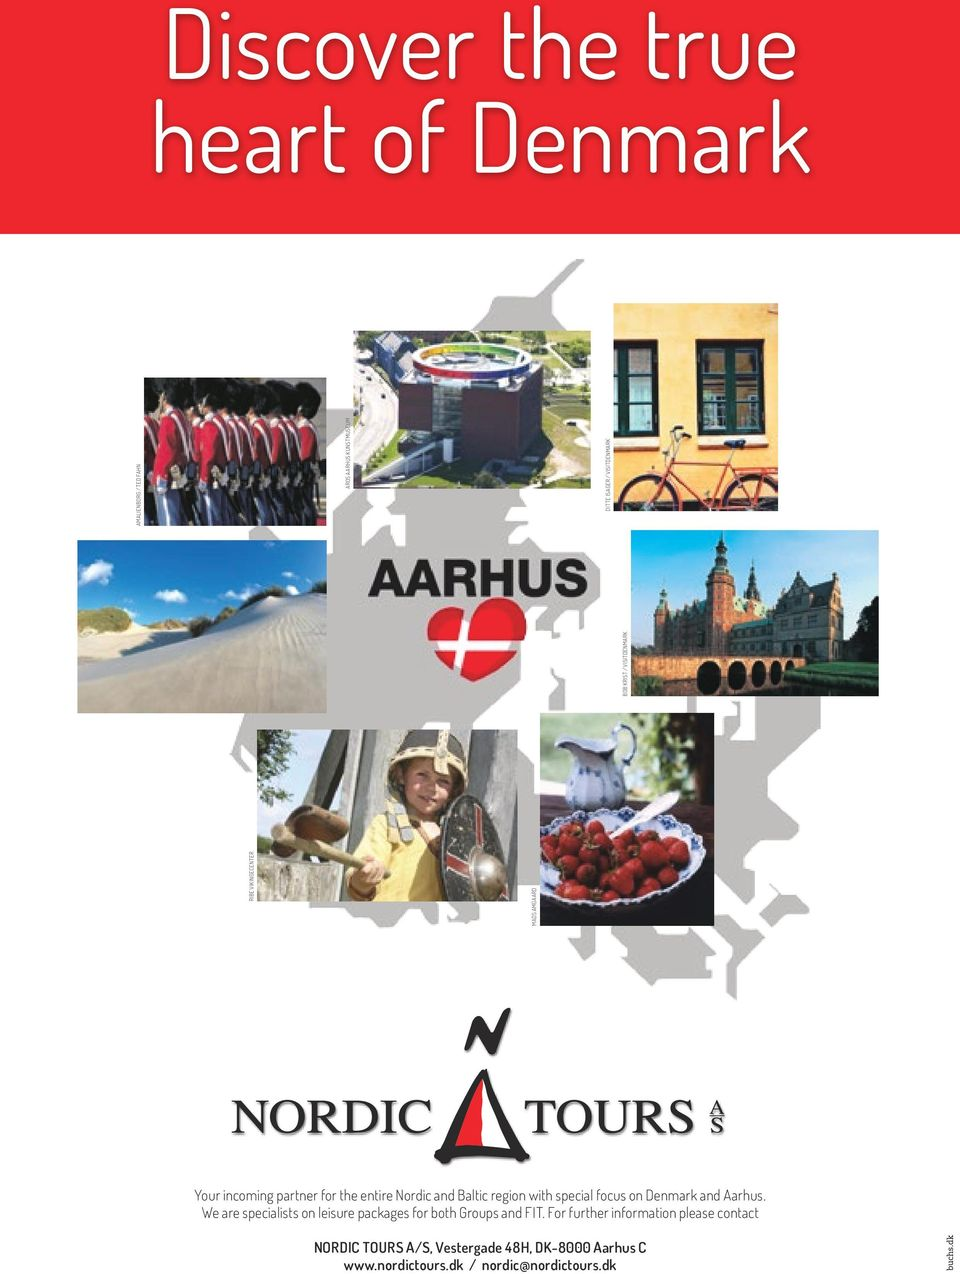 with special focus on Denmark and Aarhus. We are specialists on leisure packages for both Groups and FIT.